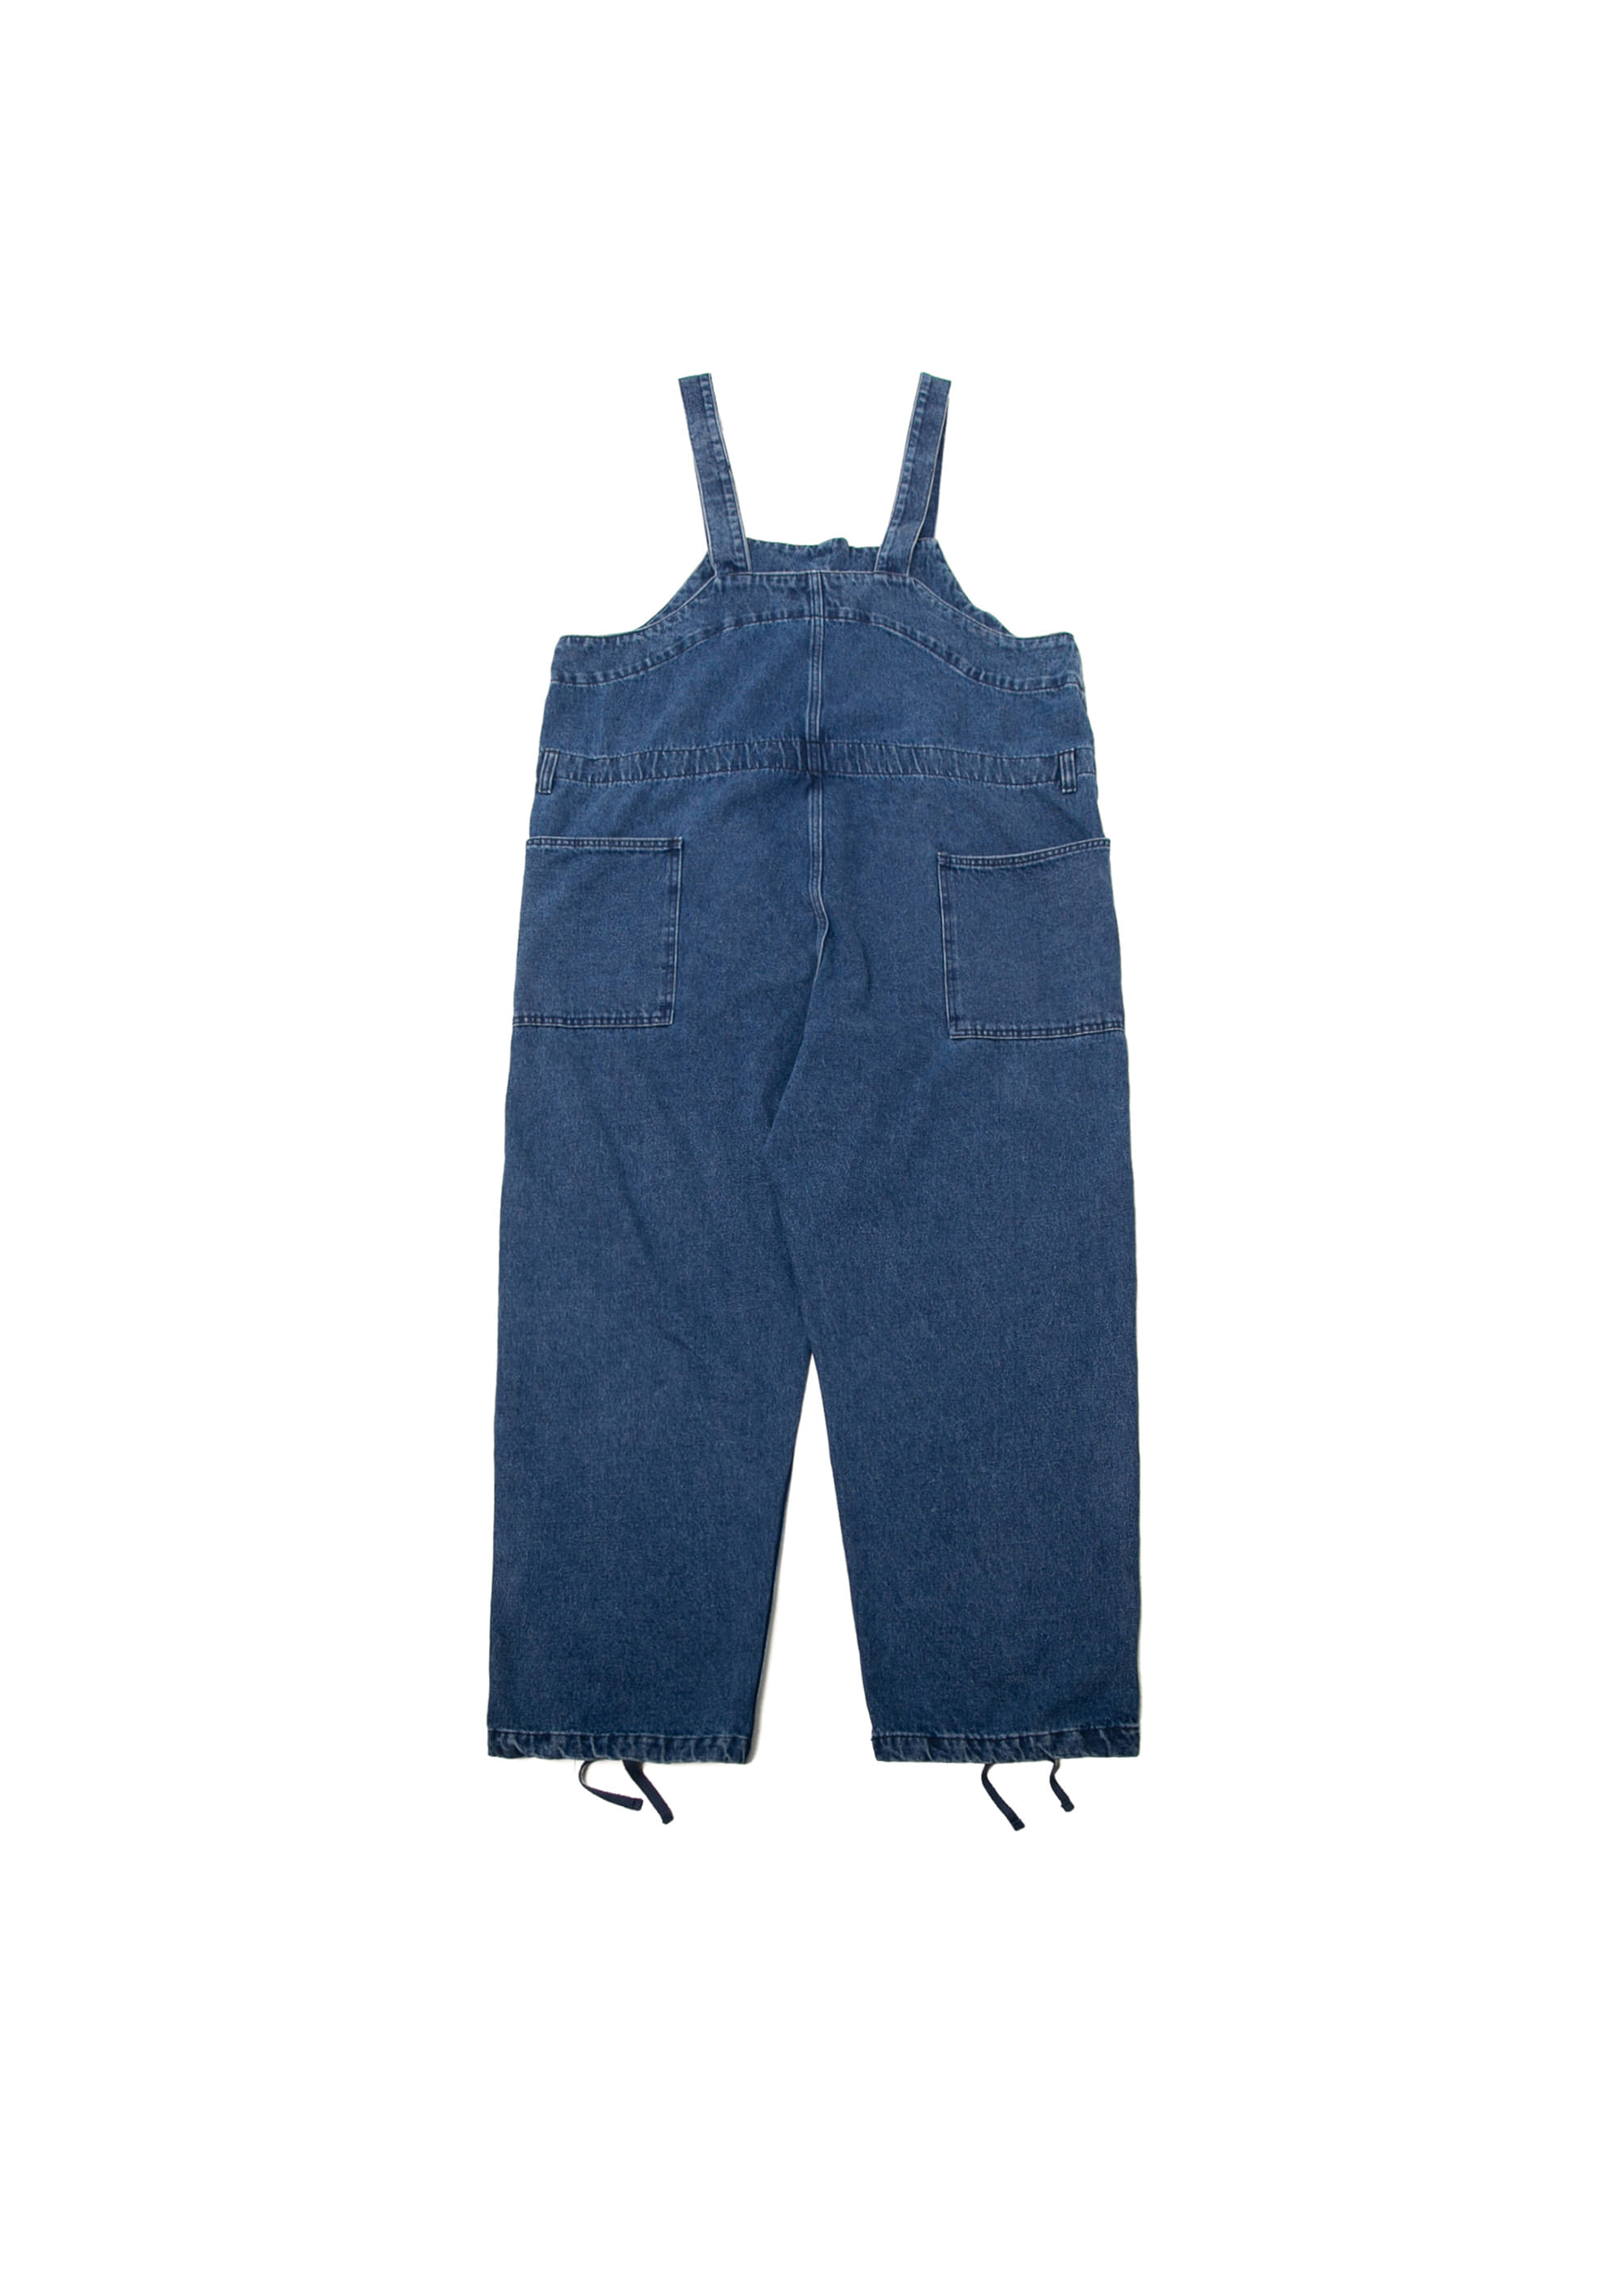 Twill Denim Overall - Dark Blue